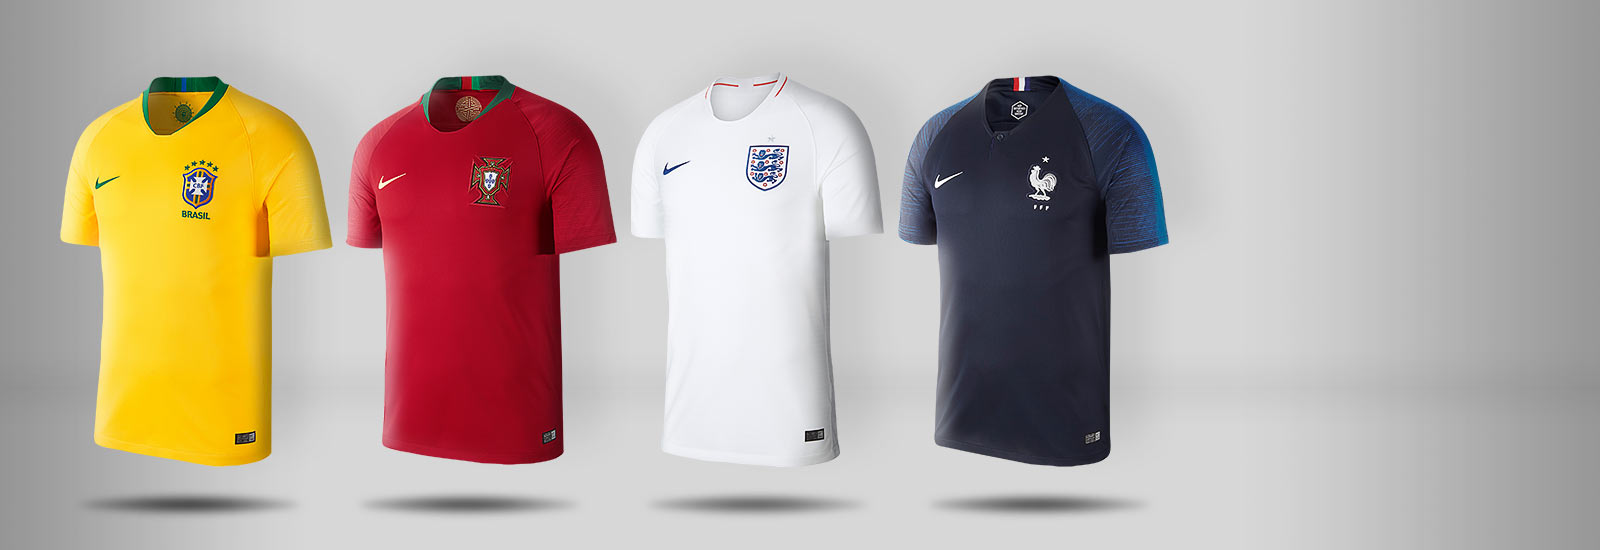 Nike World Cup Apparel 7